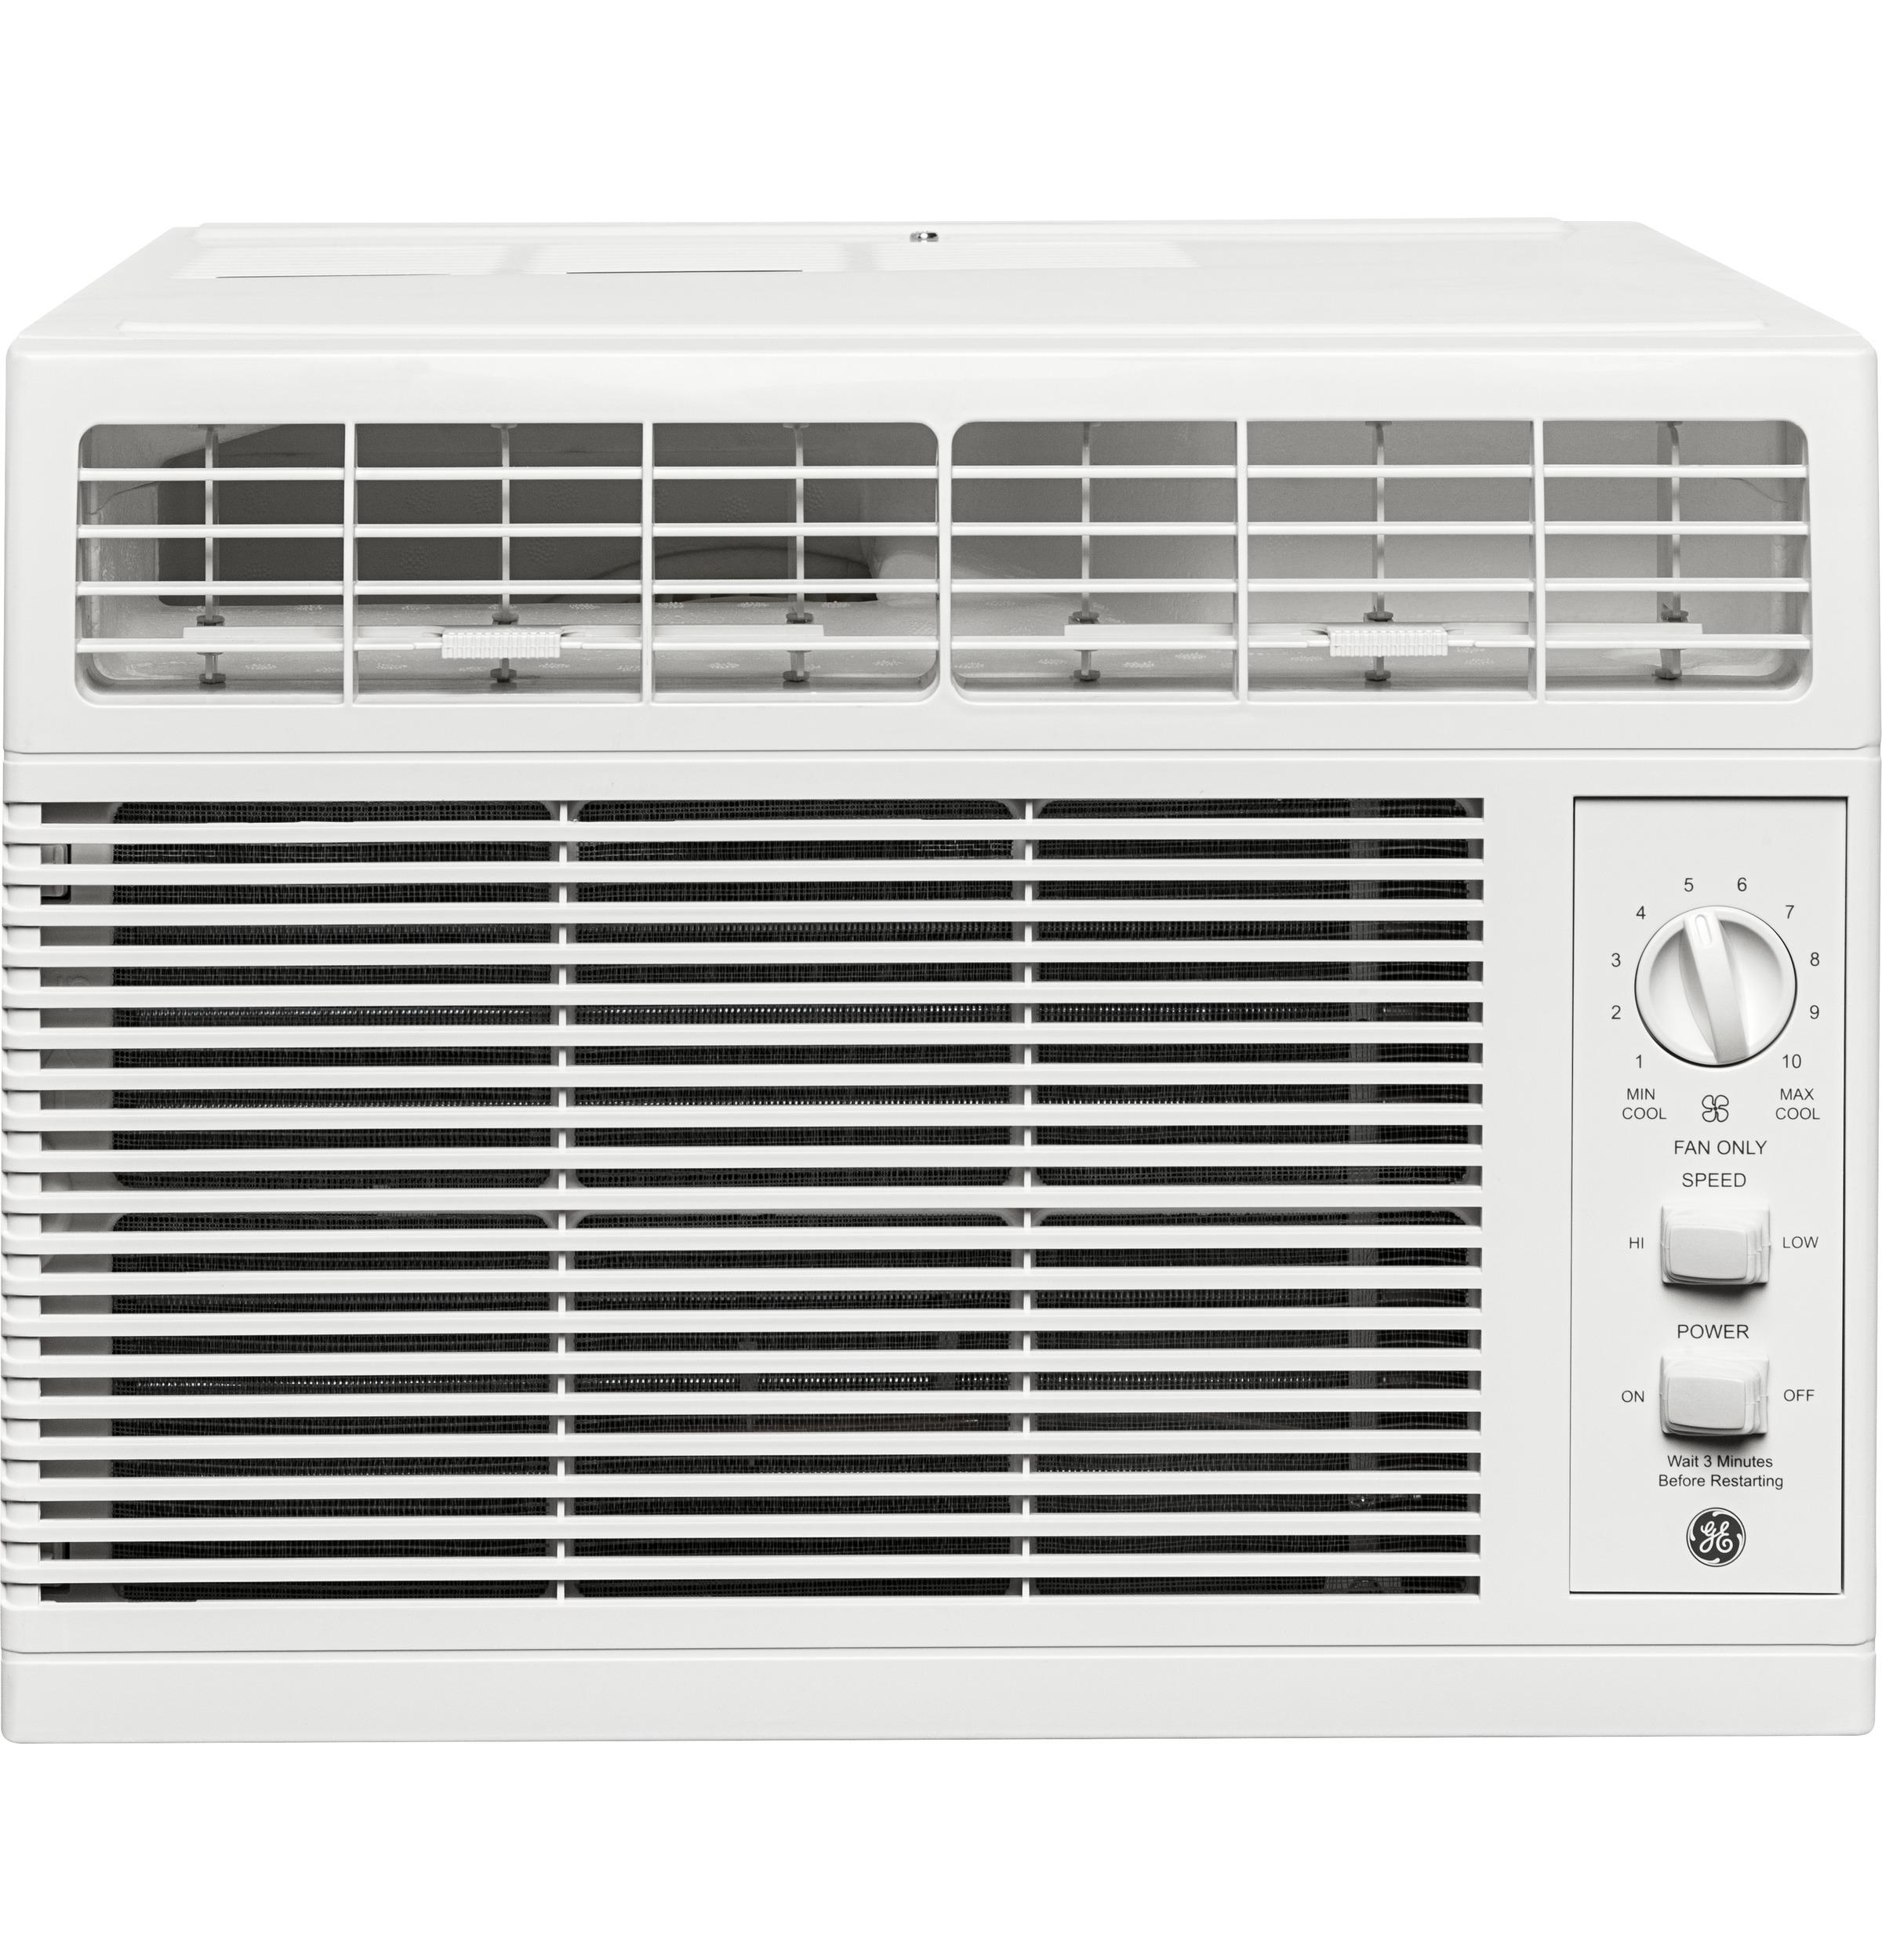 GE APPLIANCES AHV05LW